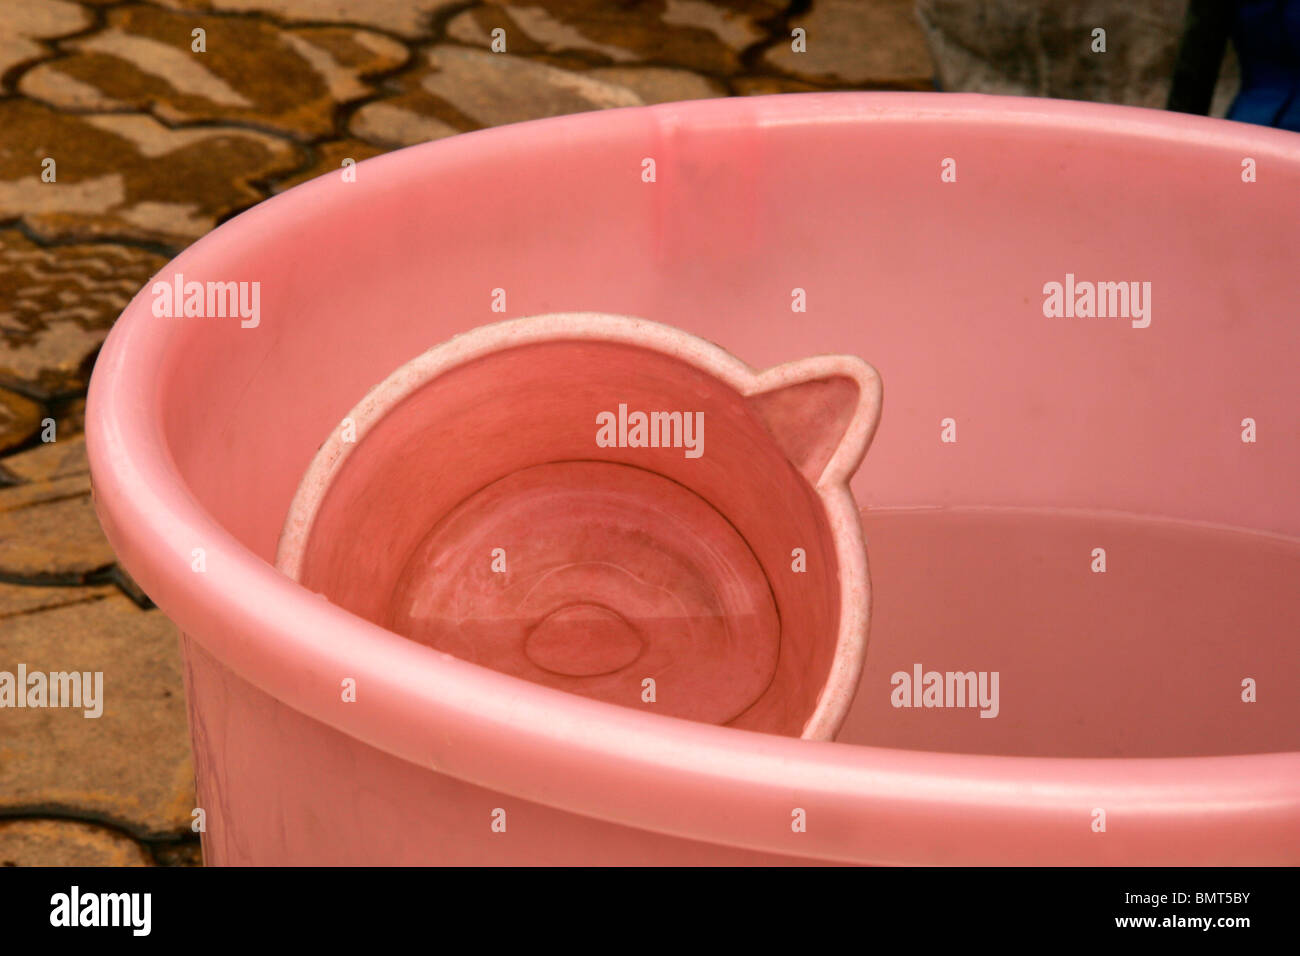 Abstract of  pink bucket showing circular patterns - Stock Image